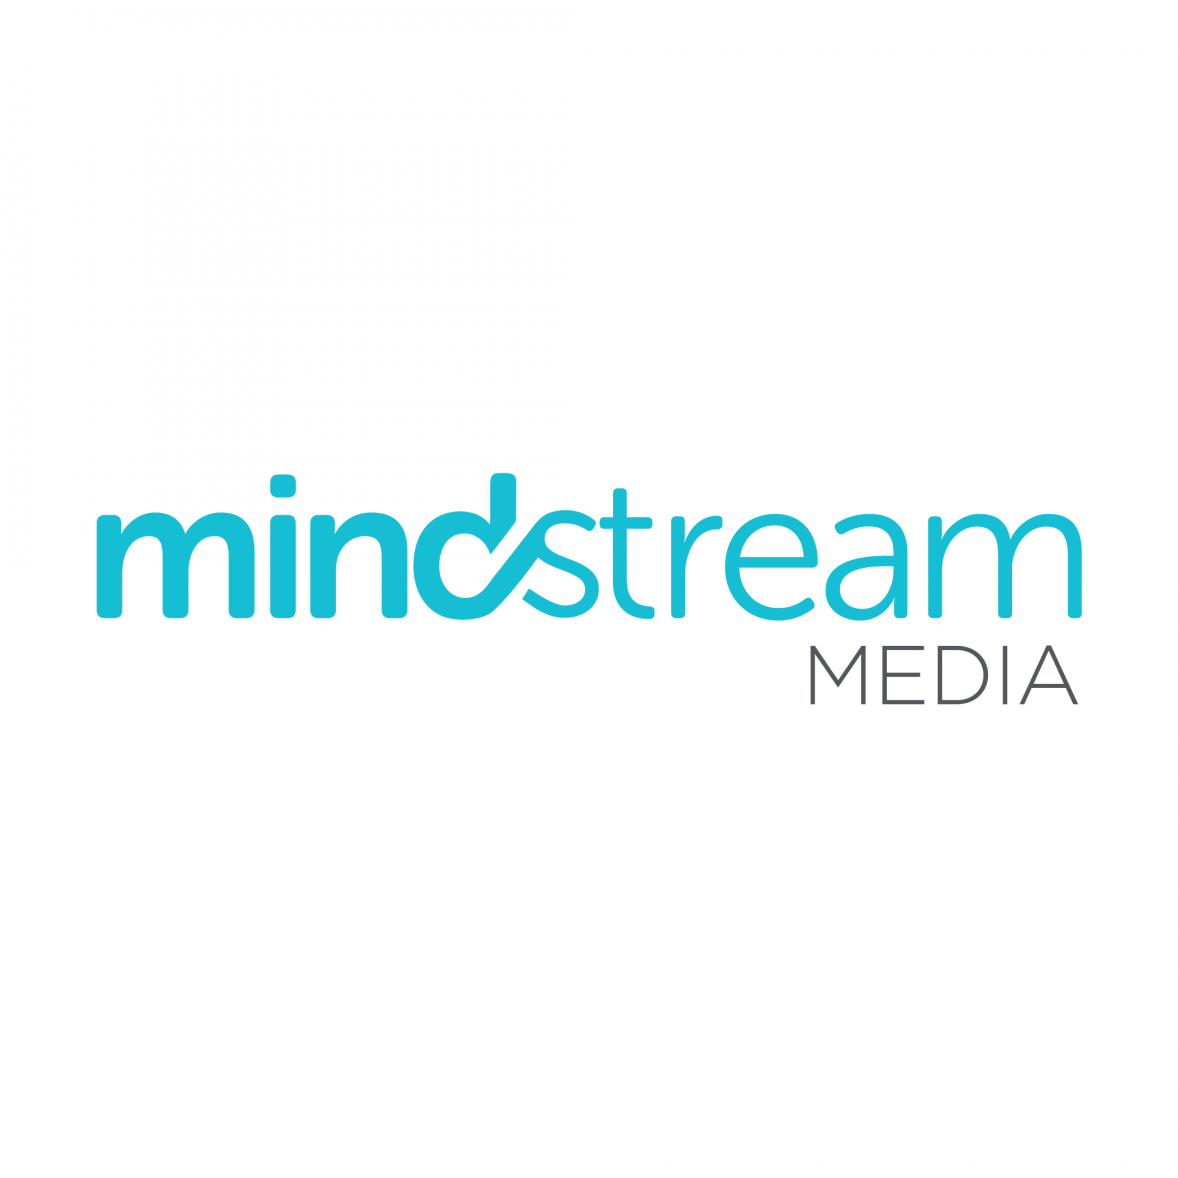 Mindstream Media image 9